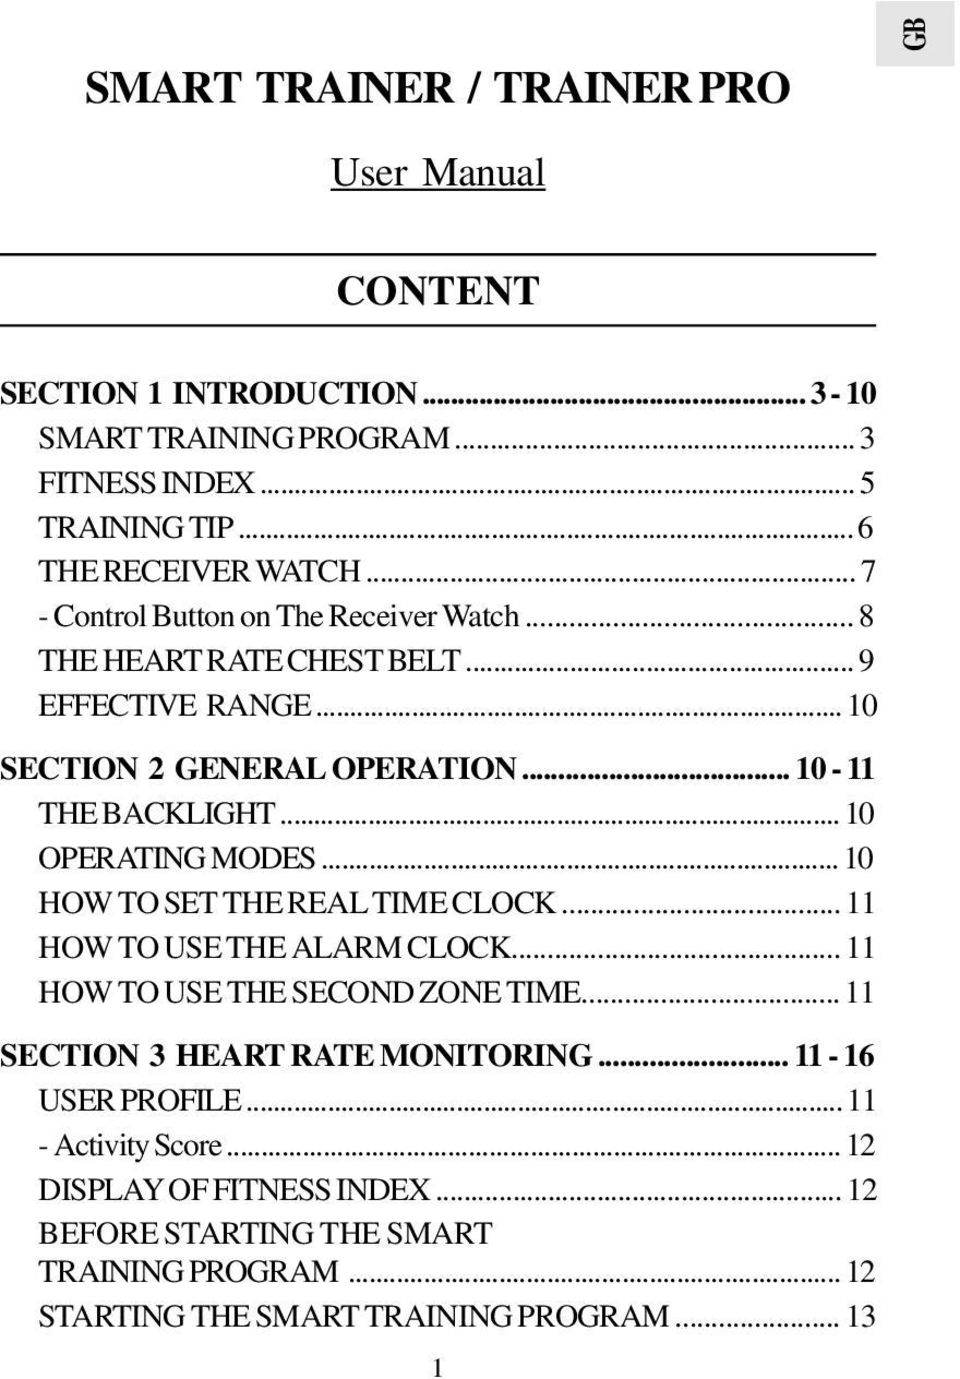 .. 10 OPERATING MODES... 10 HOW TO SET THE REAL TIME CLOCK... 11 HOW TO USE THE ALARM CLOCK... 11 HOW TO USE THE SECOND ZONE TIME... 11 SECTION 3 HEART RATE MONITORING.